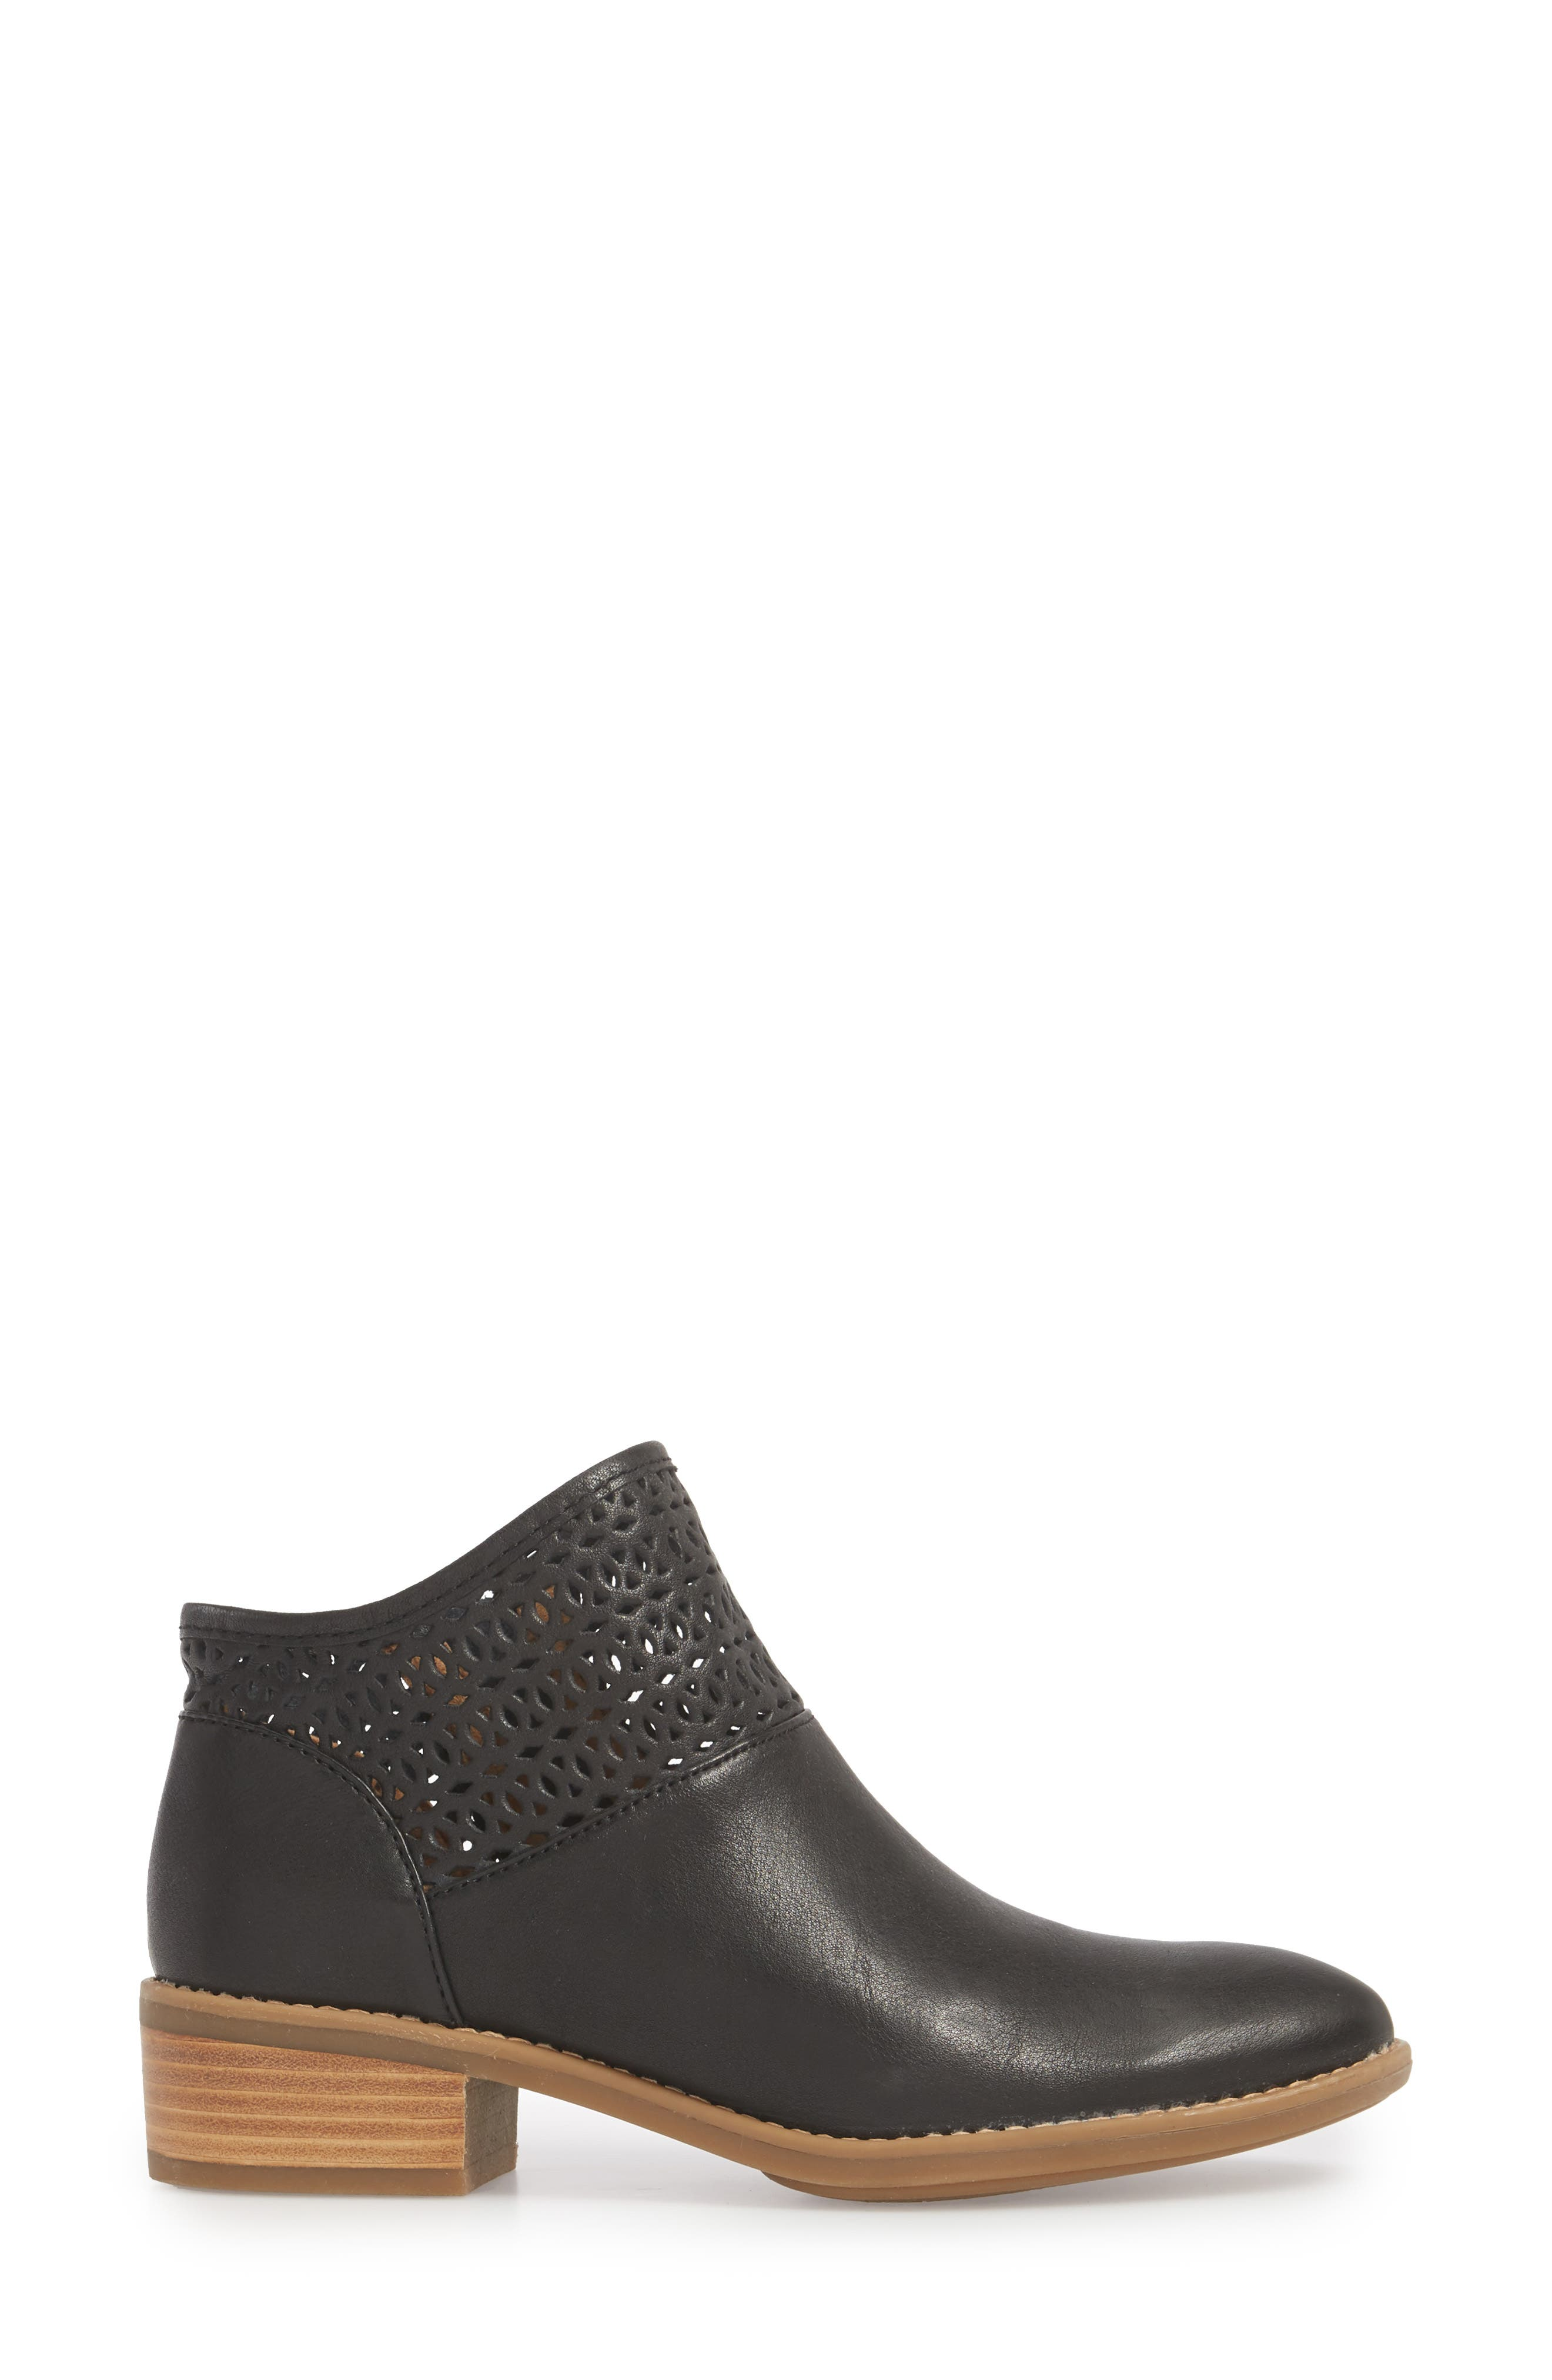 Caileen Bootie,                             Alternate thumbnail 3, color,                             BLACK